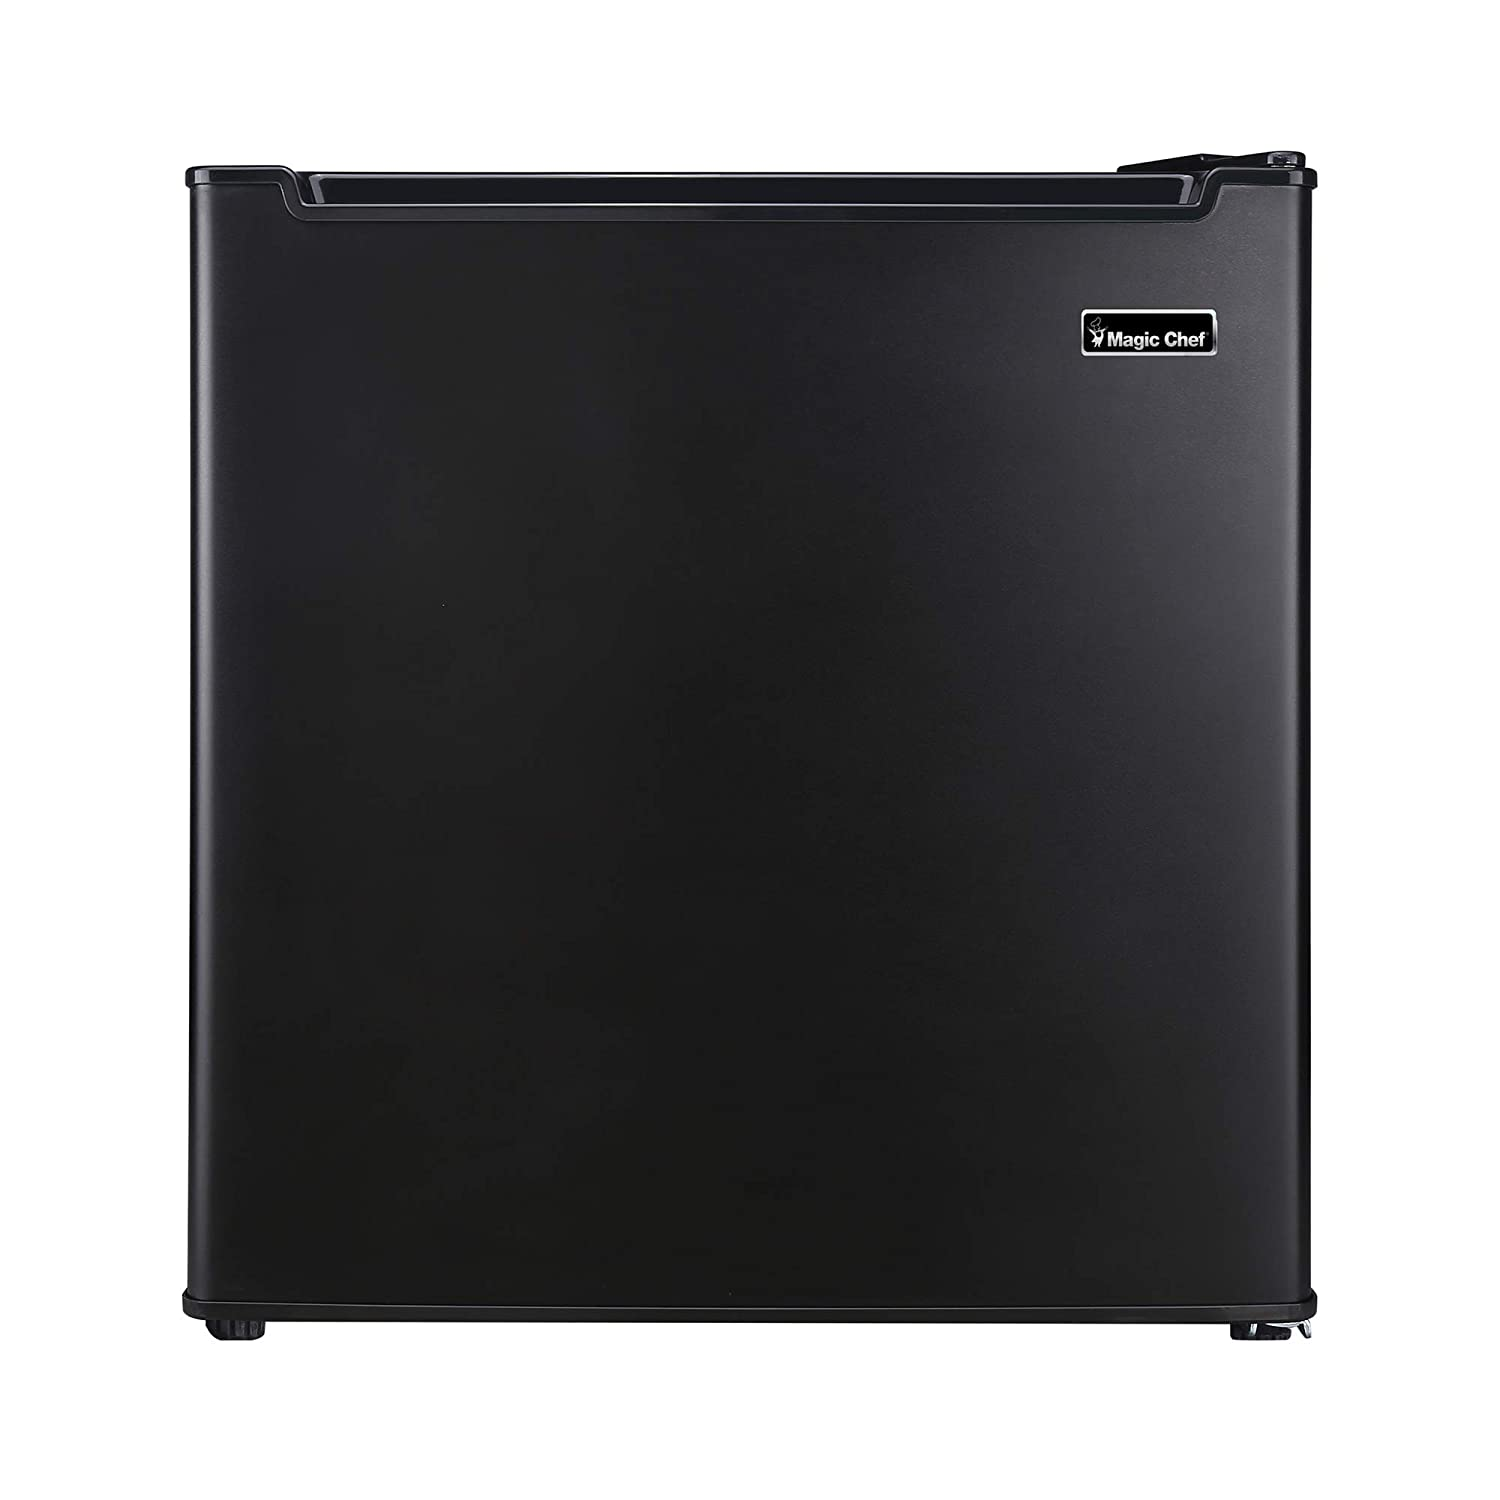 1.7 Cu. Ft. Mini Refrigerator with Chiller Compartment in Black